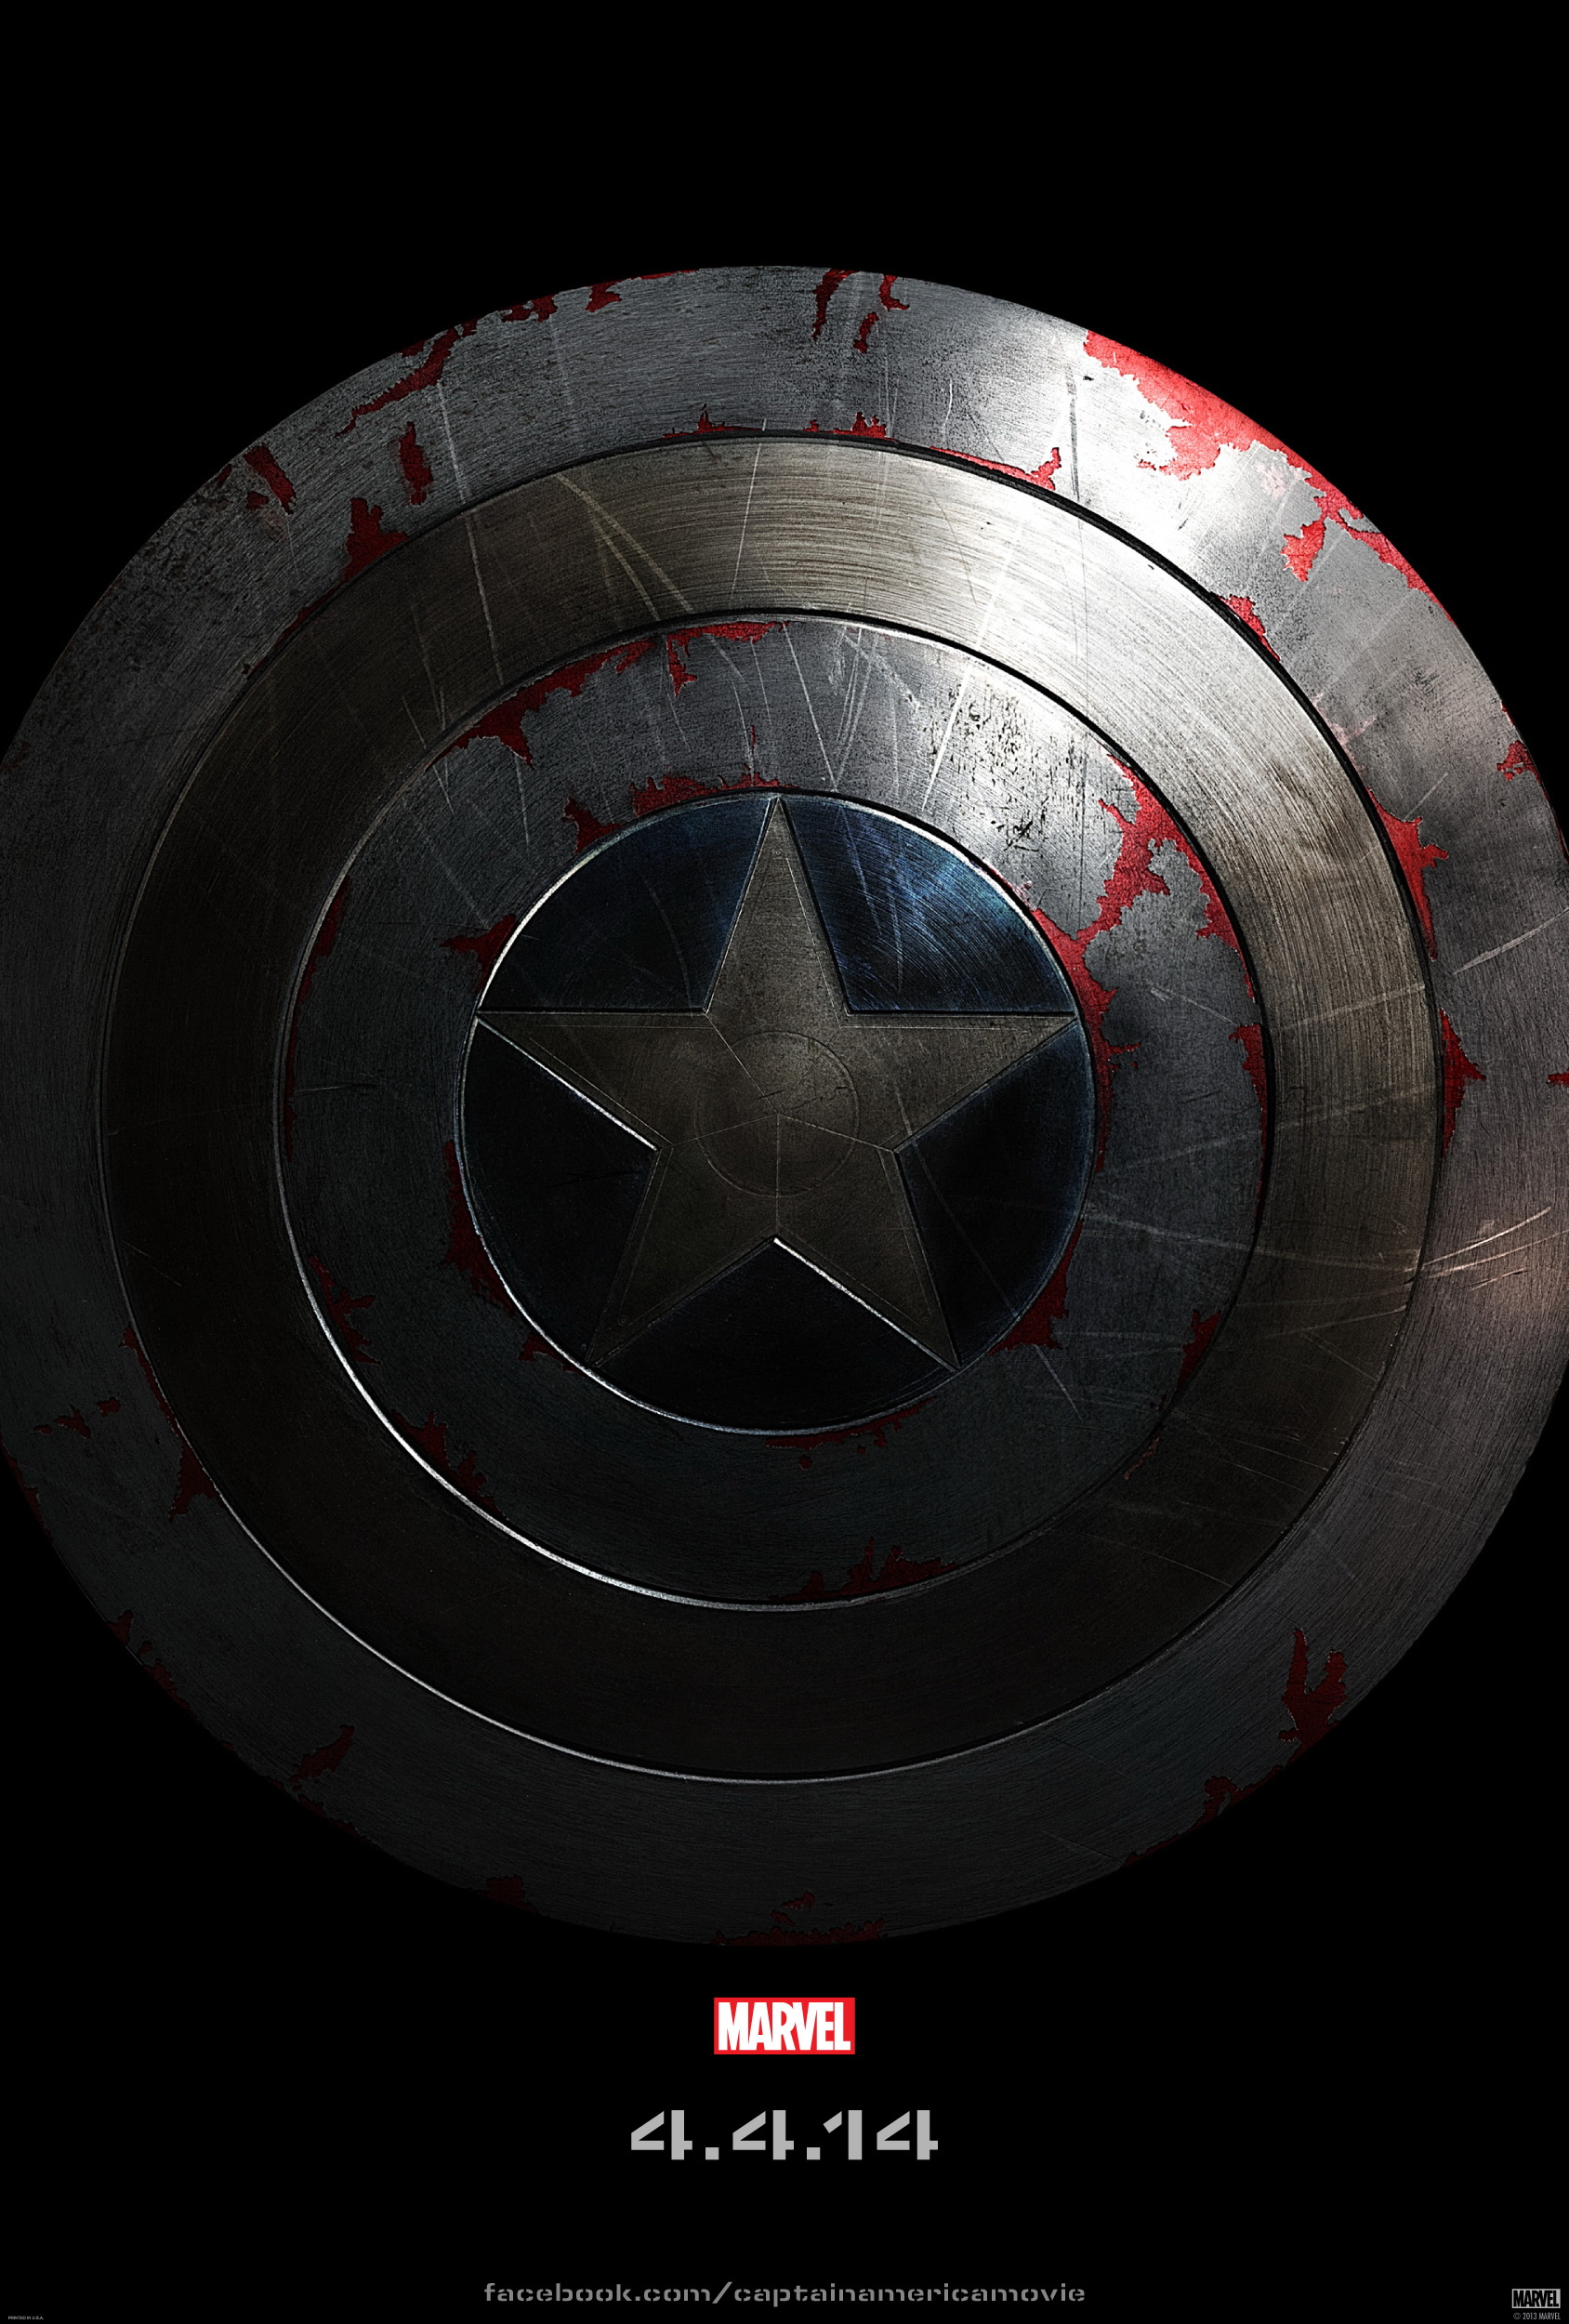 Captain America 2 Teaser Poster SHIELD Captain America 2 Poster Is All About The Shield